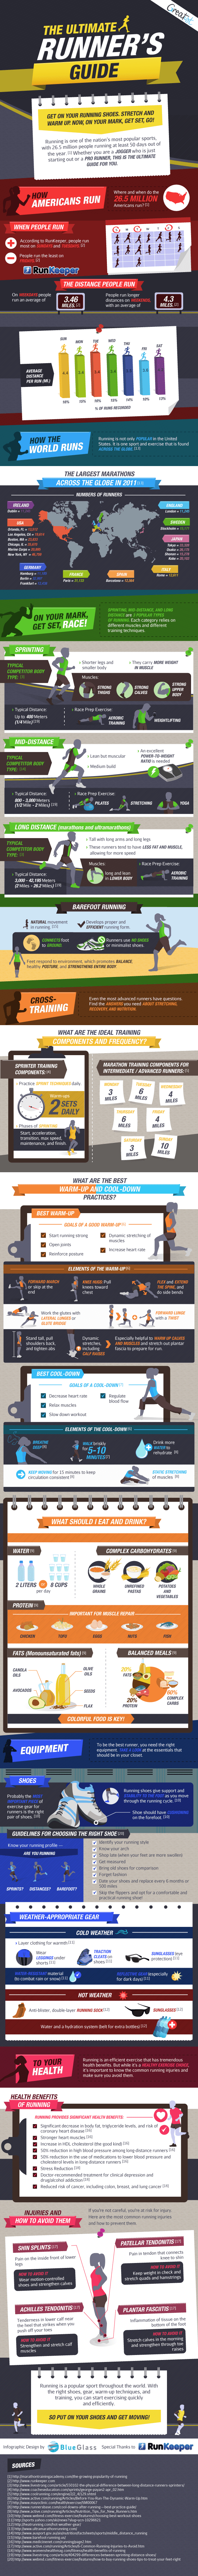 The Ultimate Runners Guide